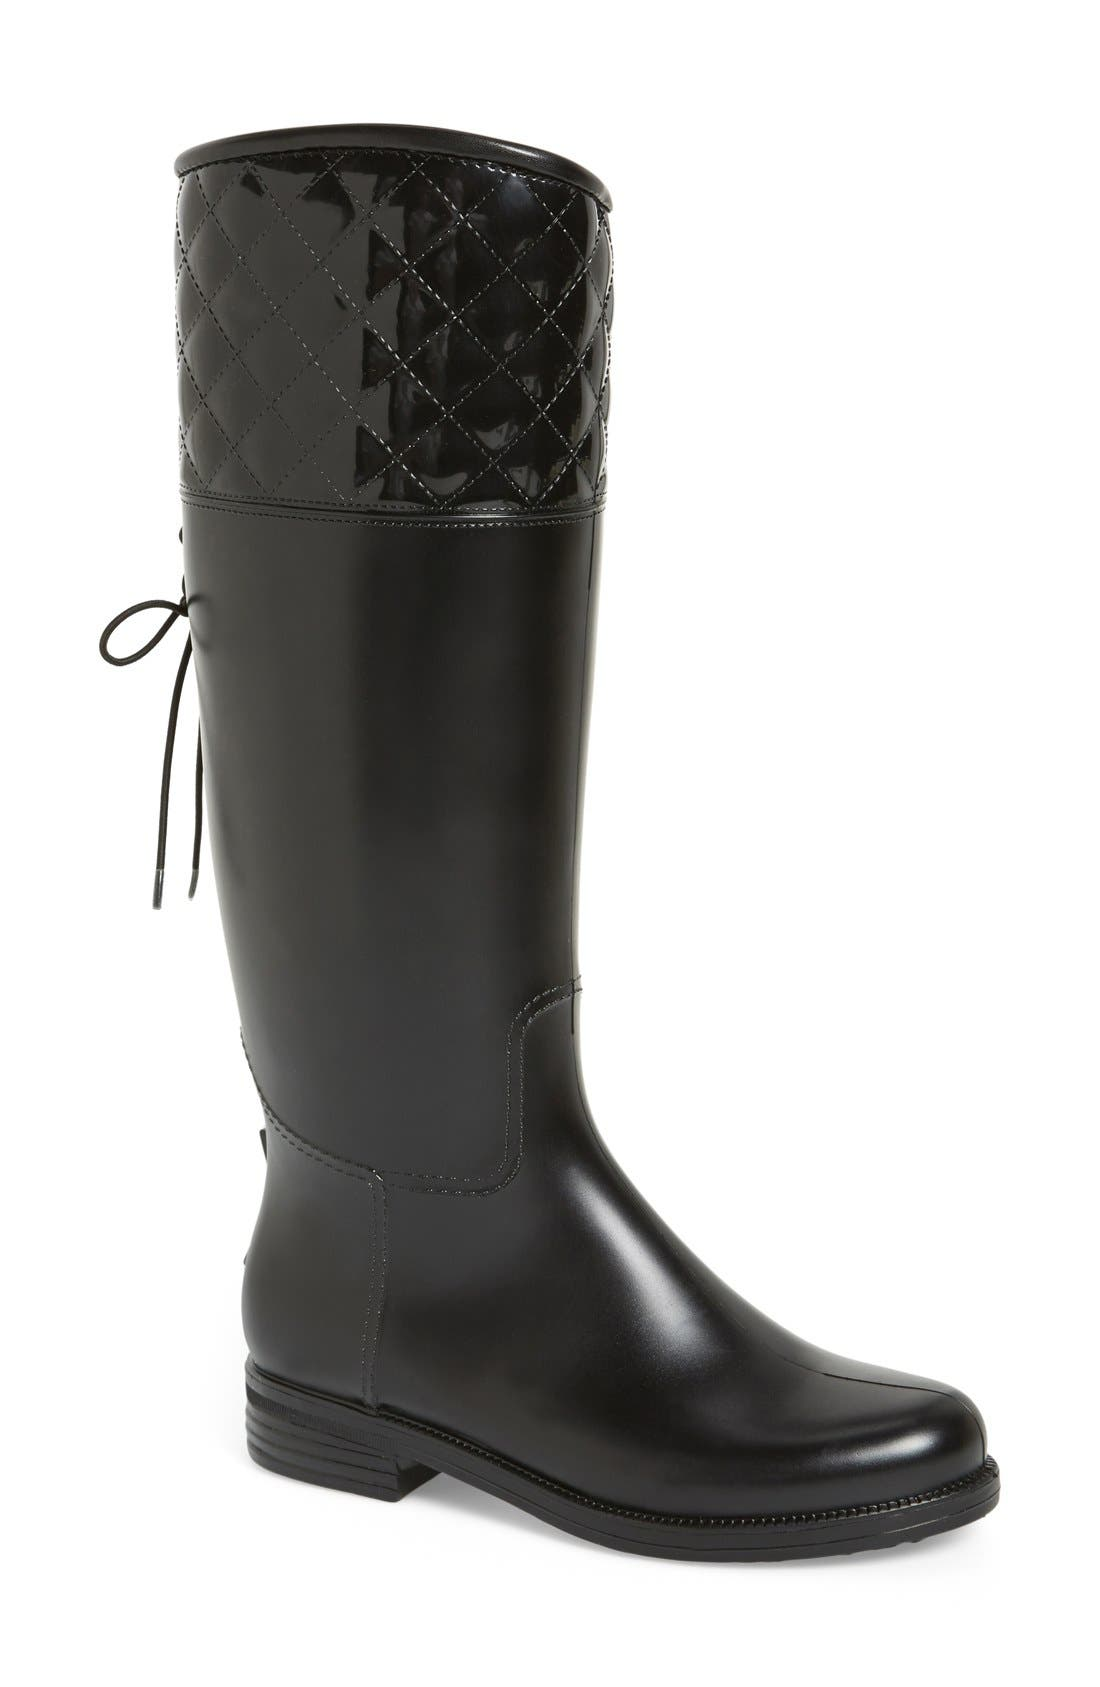 Alternate Image 1 Selected - däv 'Victoria' Waterproof Tall Rain Boot (Women)